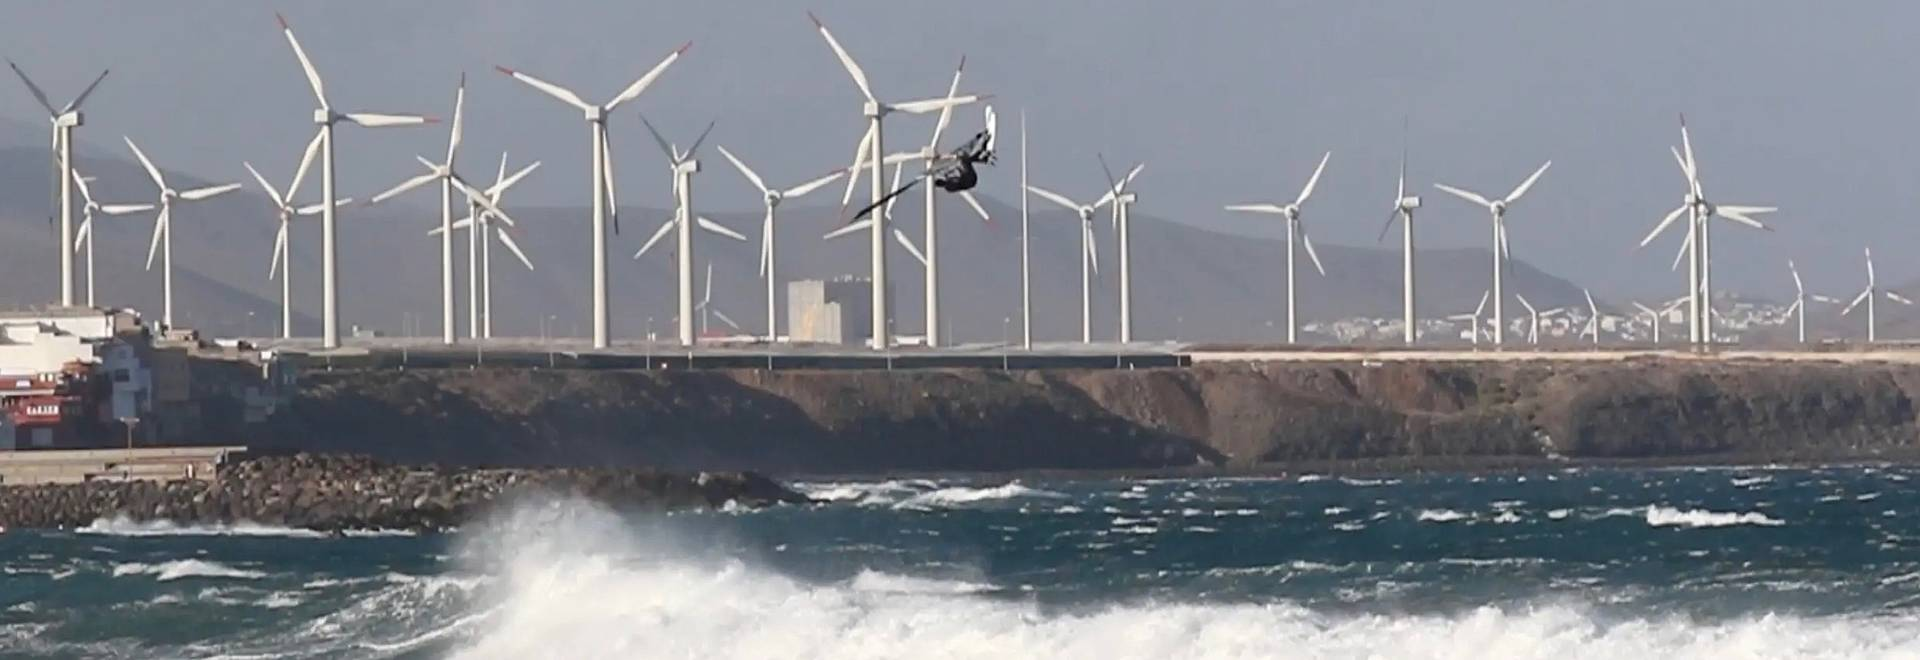 Fliesen Schneiden Ohne Bruch Pwa World Windsurfing Tour Home